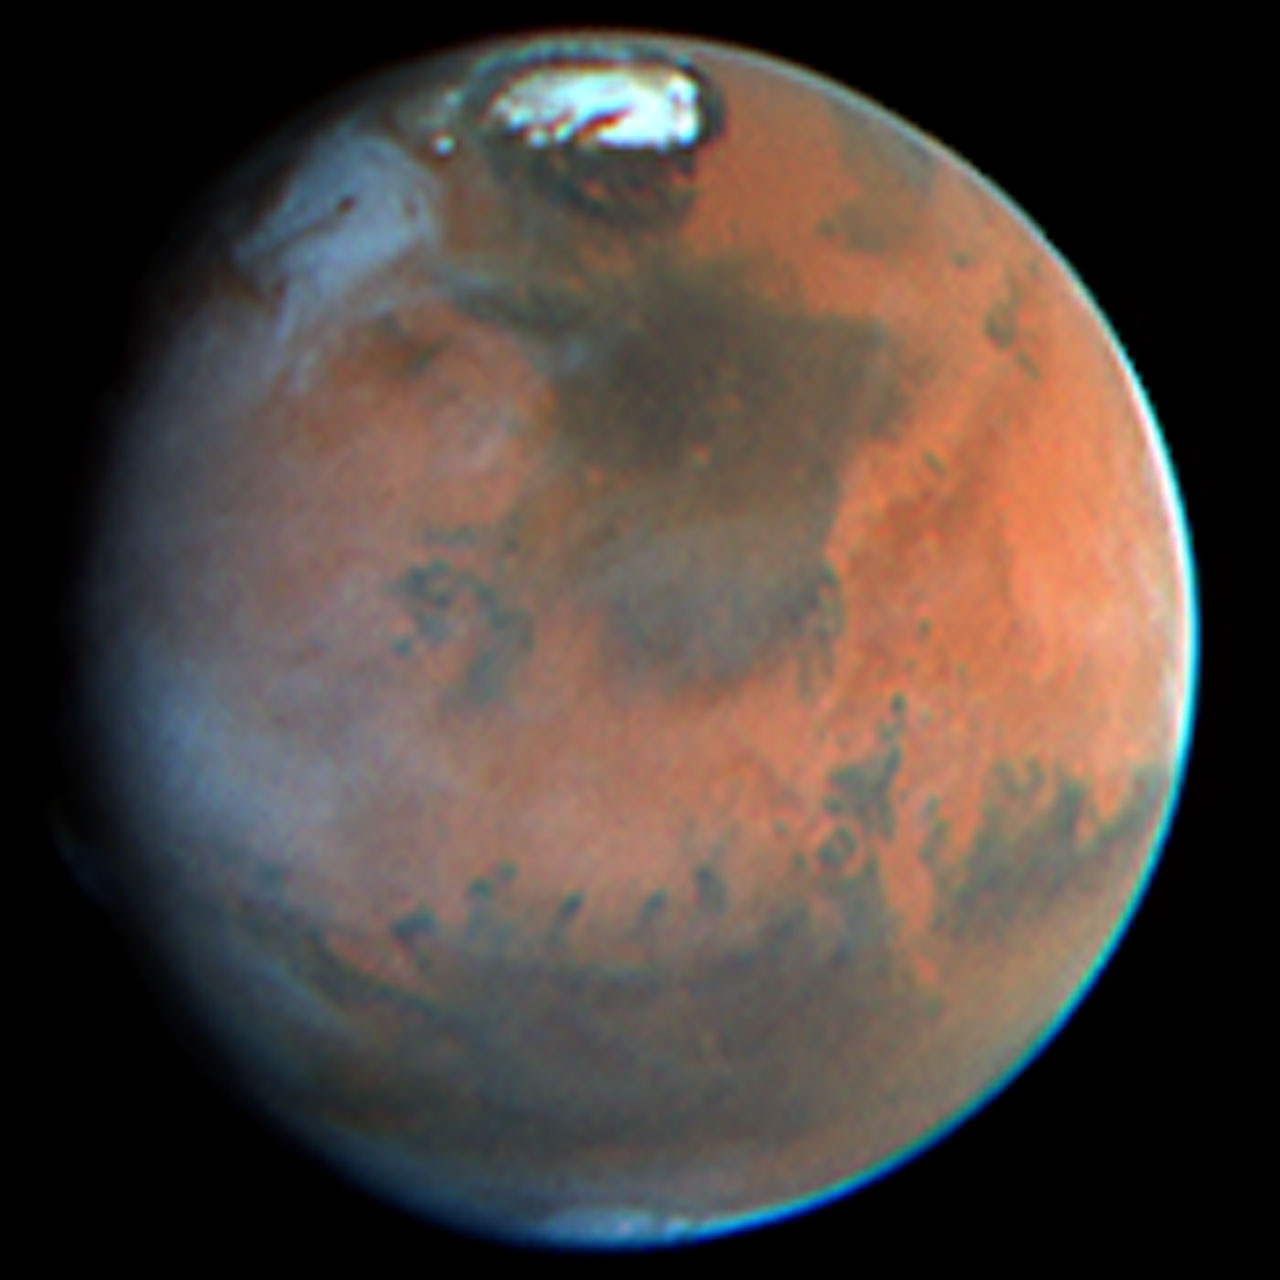 hubble images of mars - photo #11